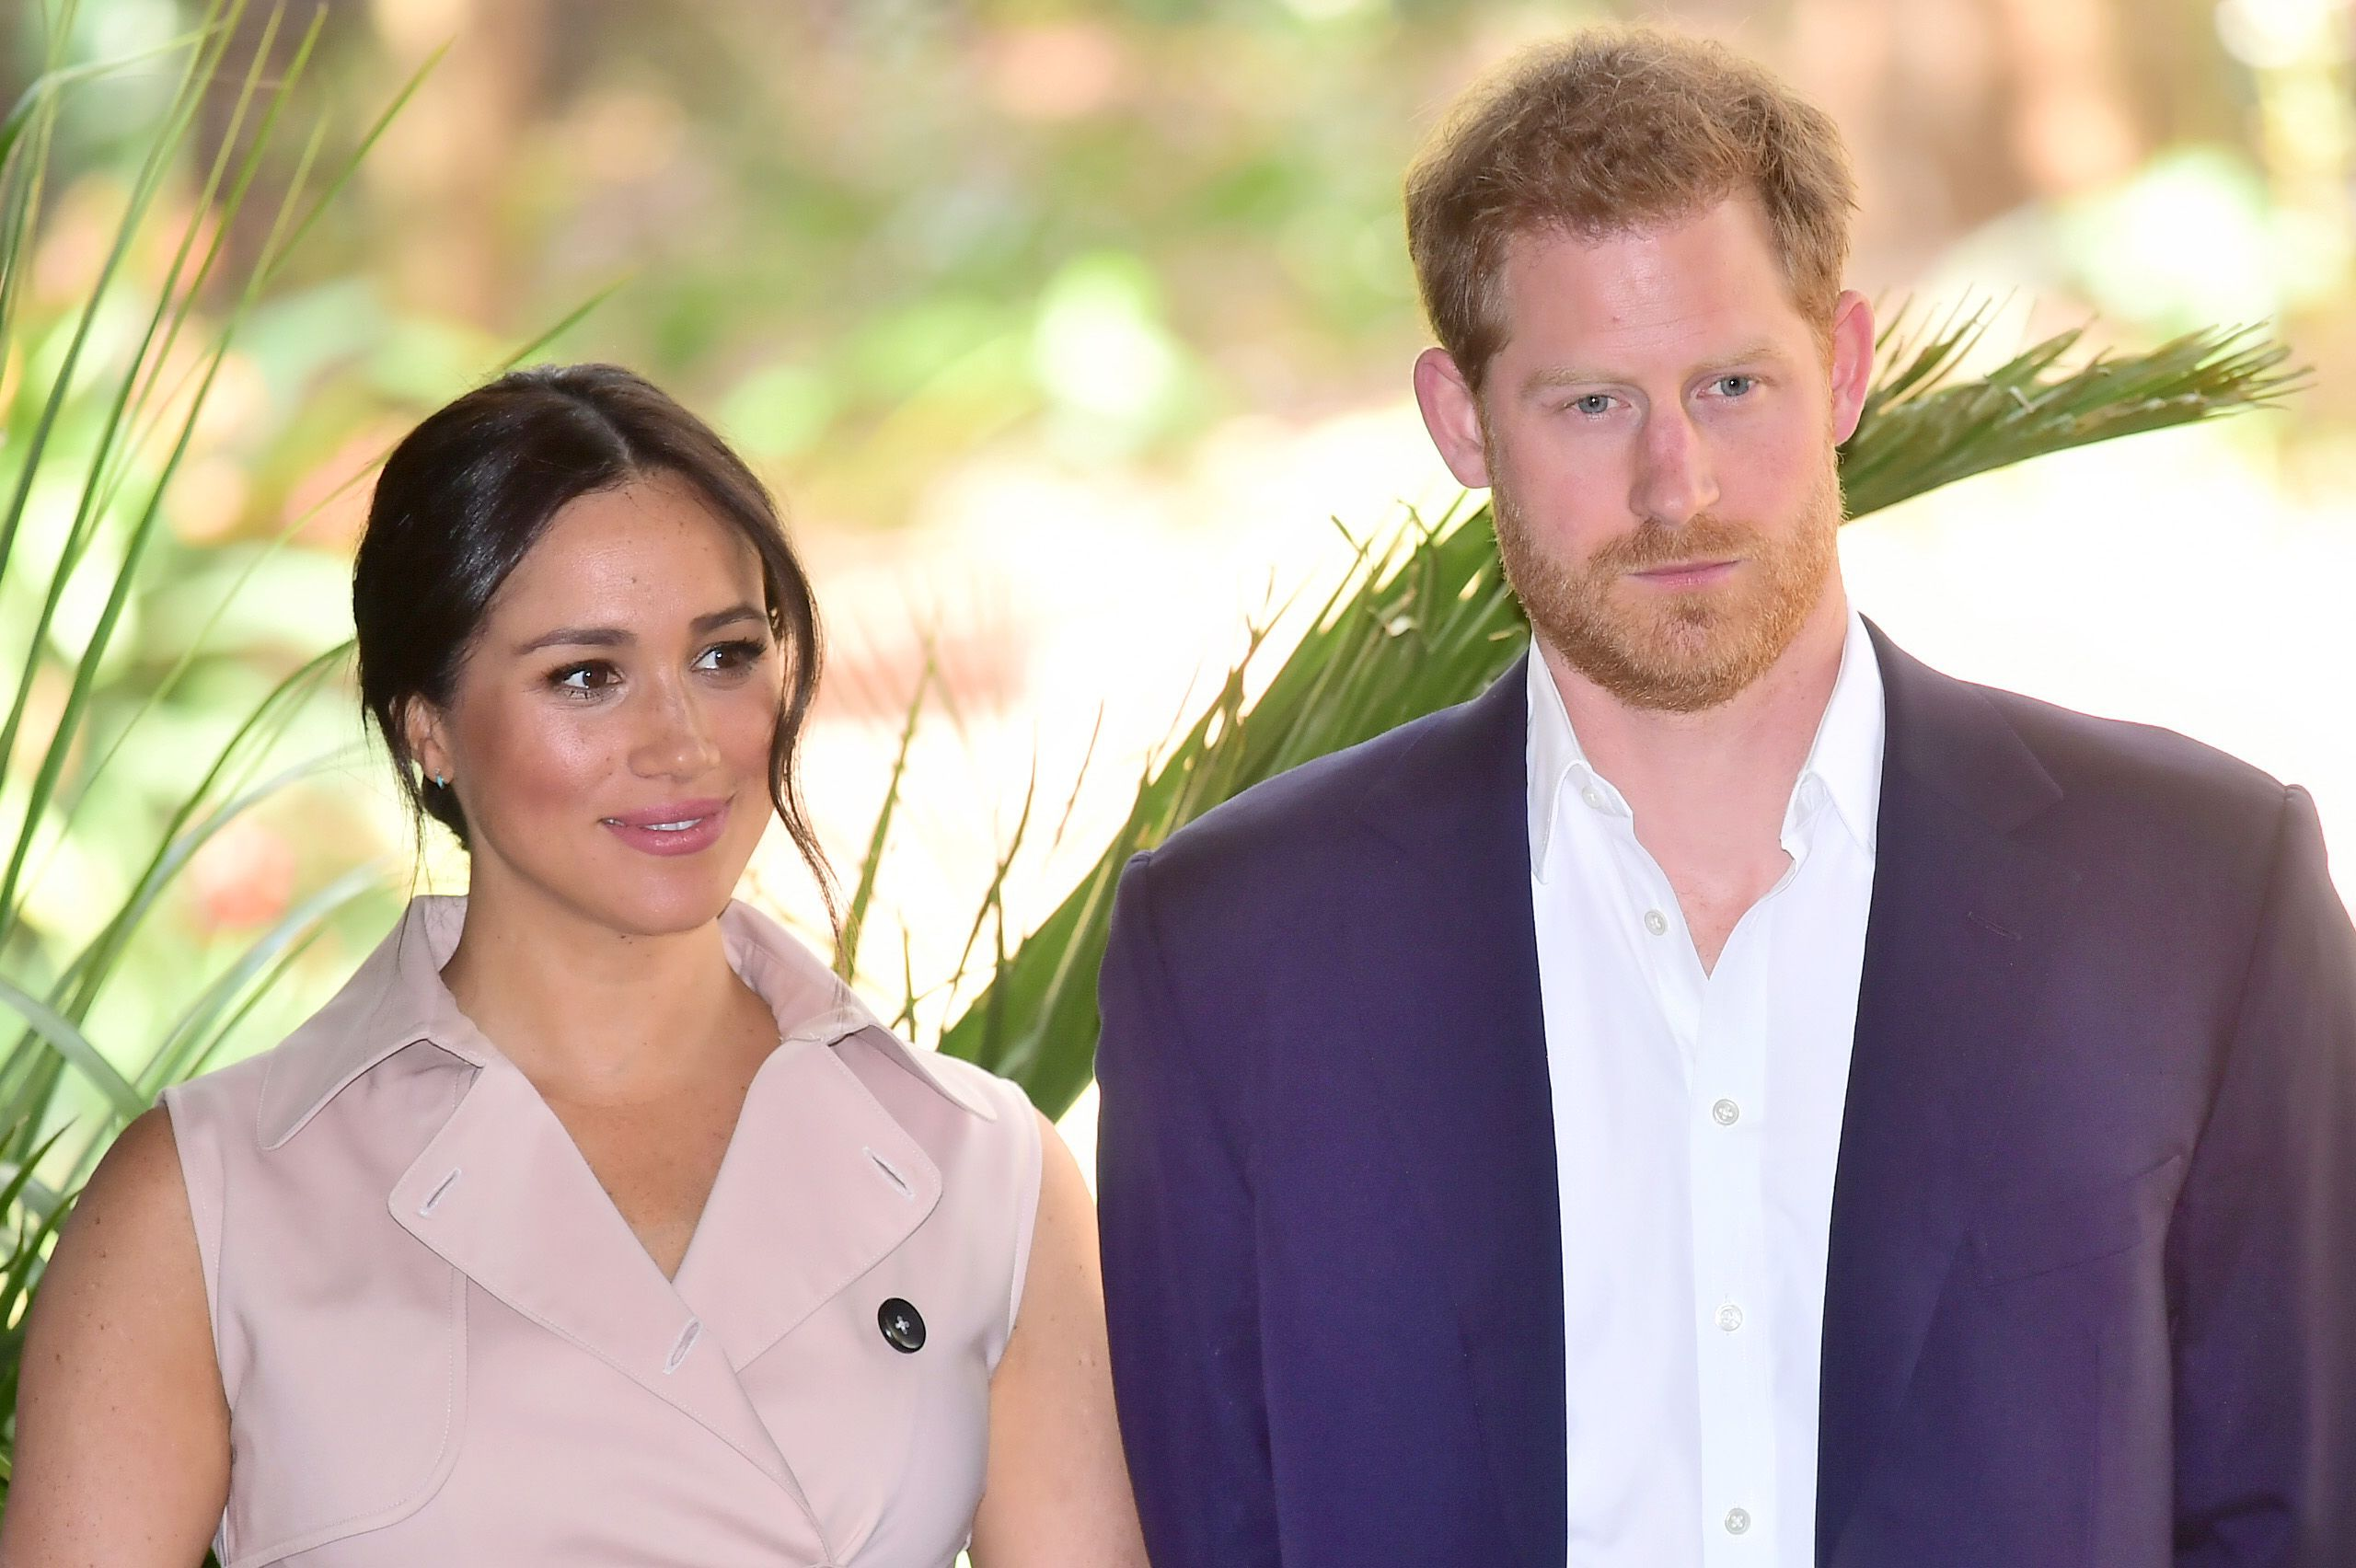 Meghan, Harry and Archie won't be spending Christmas at Sandringham with the Queen, apparently